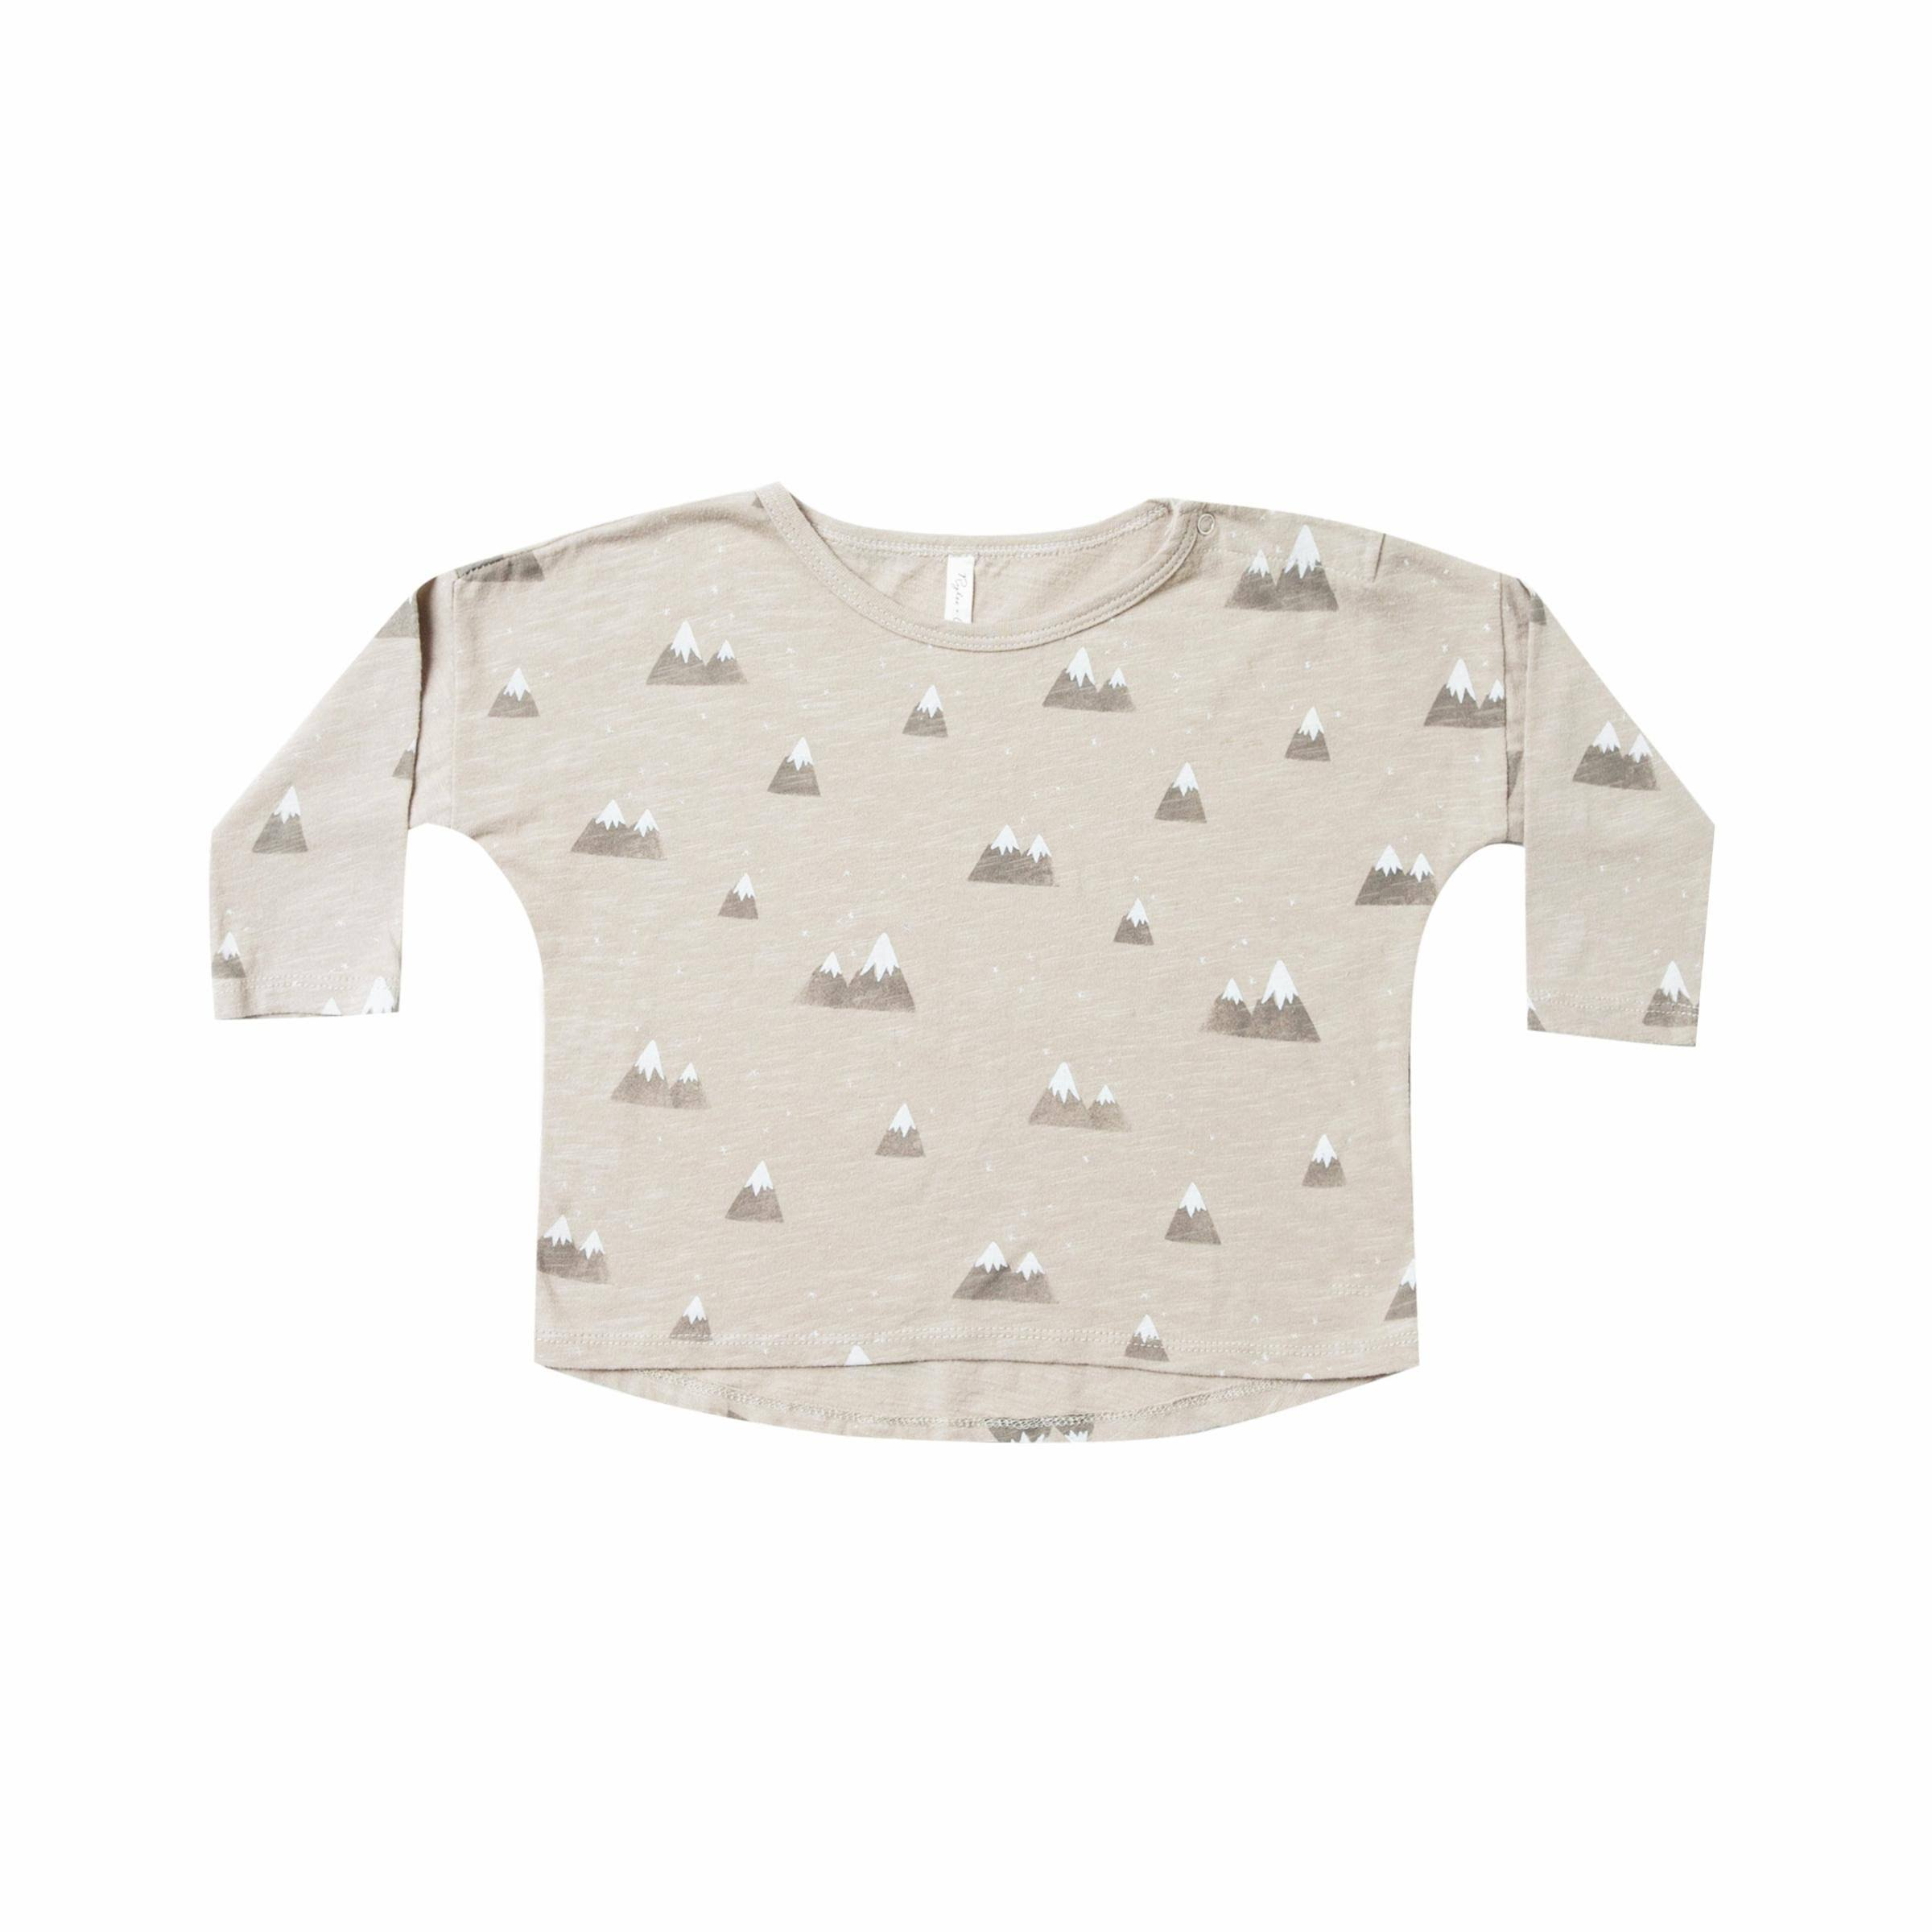 Rylee & Cru Baby Boy Mountains Long Sleeve Tee